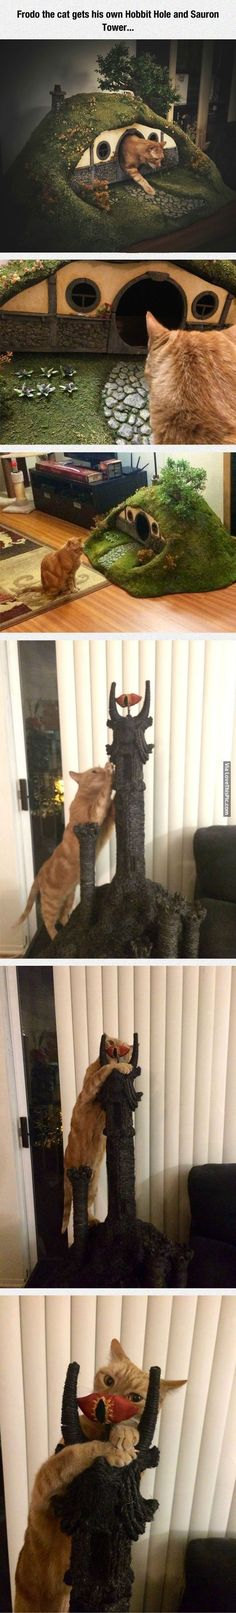 Frodo The Cat. I don't know if our cats would actualy play with these